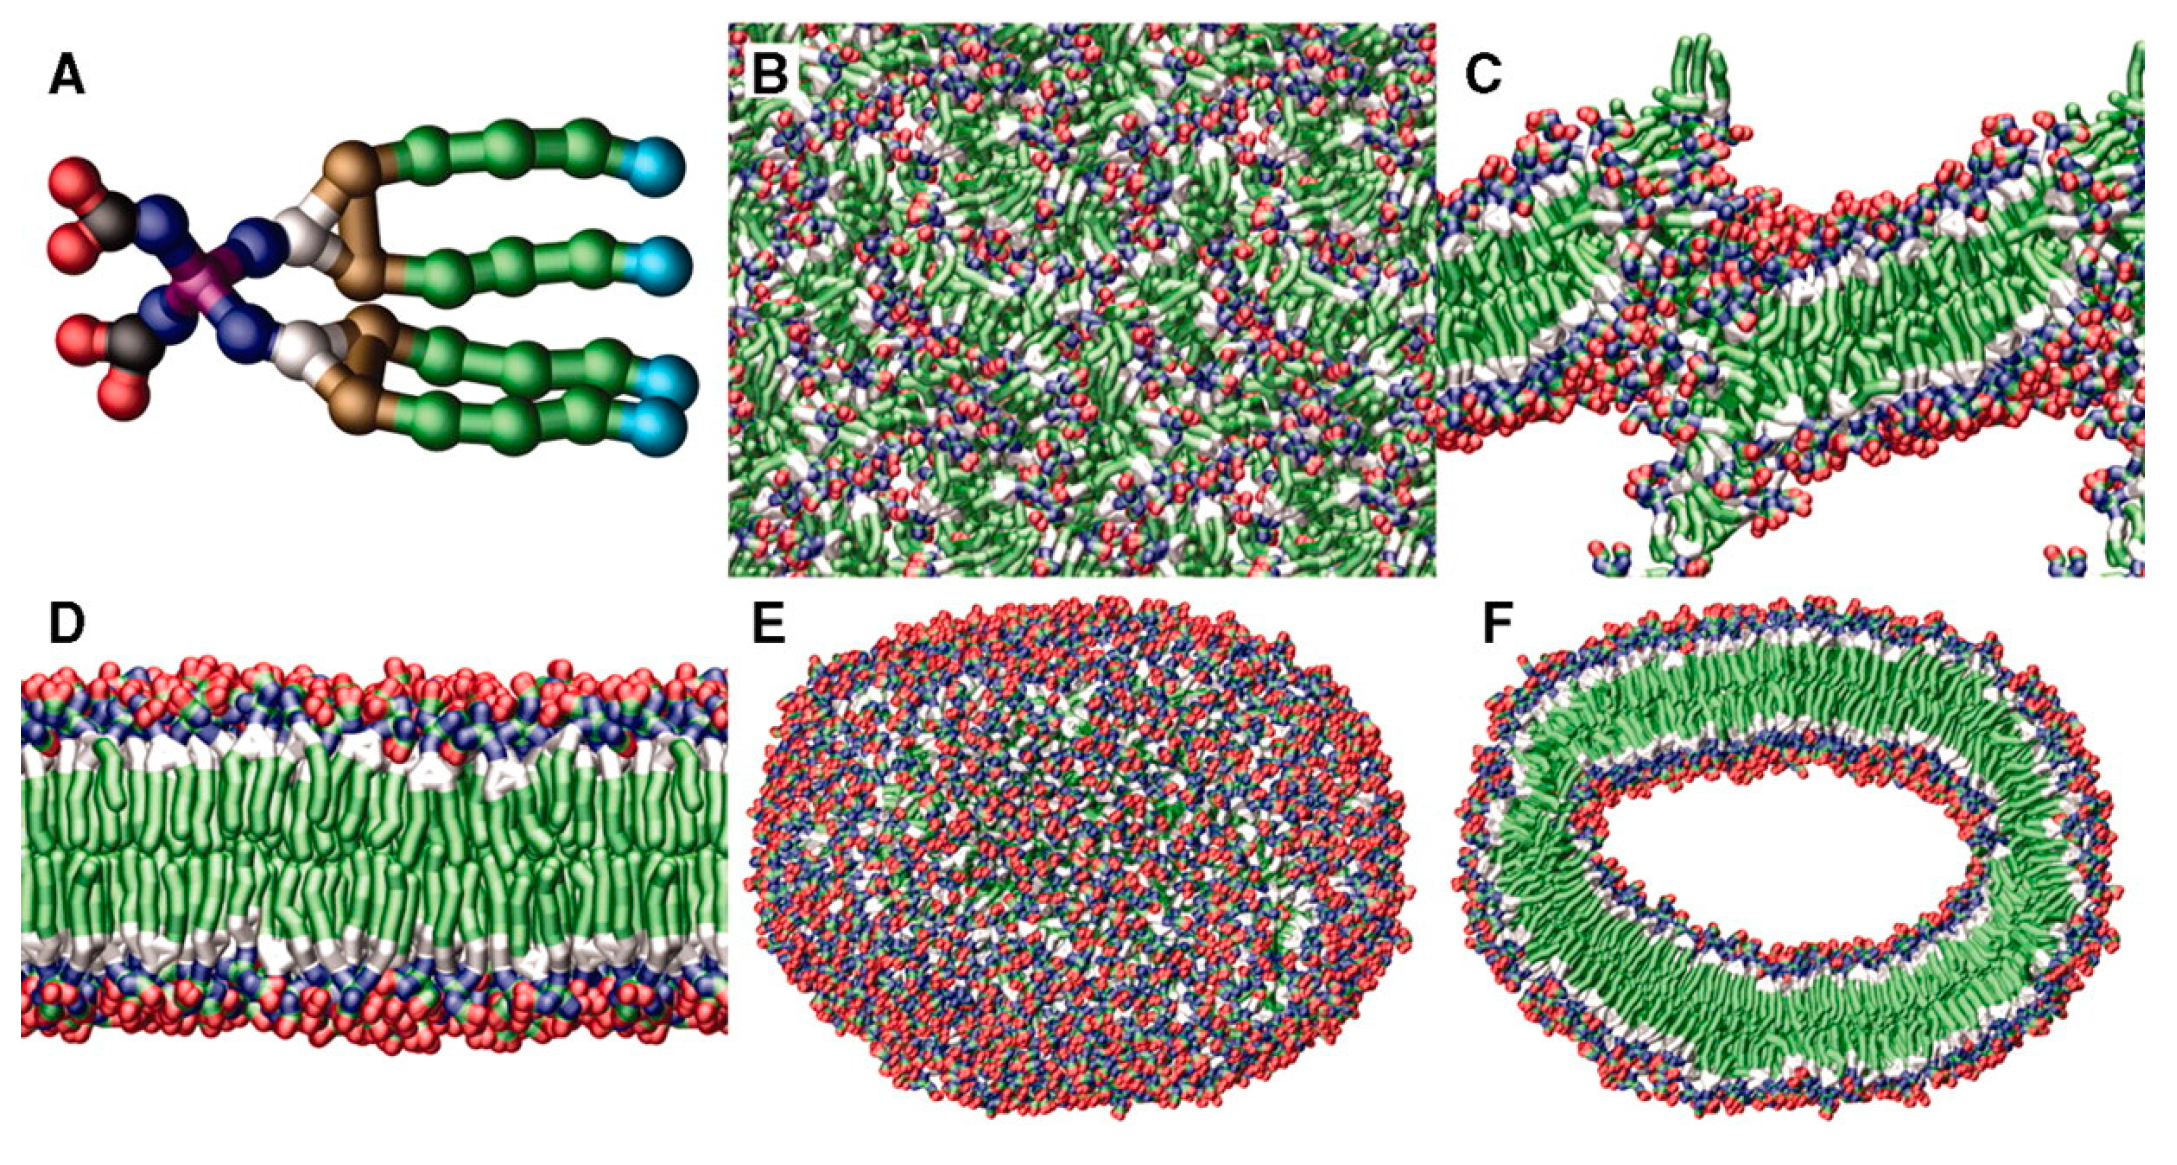 polymeric vesicles Polymer vesicles, also known as polymersomes, are finding increasing applications in biomedical field, including drug delivery, gene therapy, magnetic resonance imaging, theranostics, etc this is due to their intrinsic hollow nanostructure and compartmentalized domains with diverse functionalities.